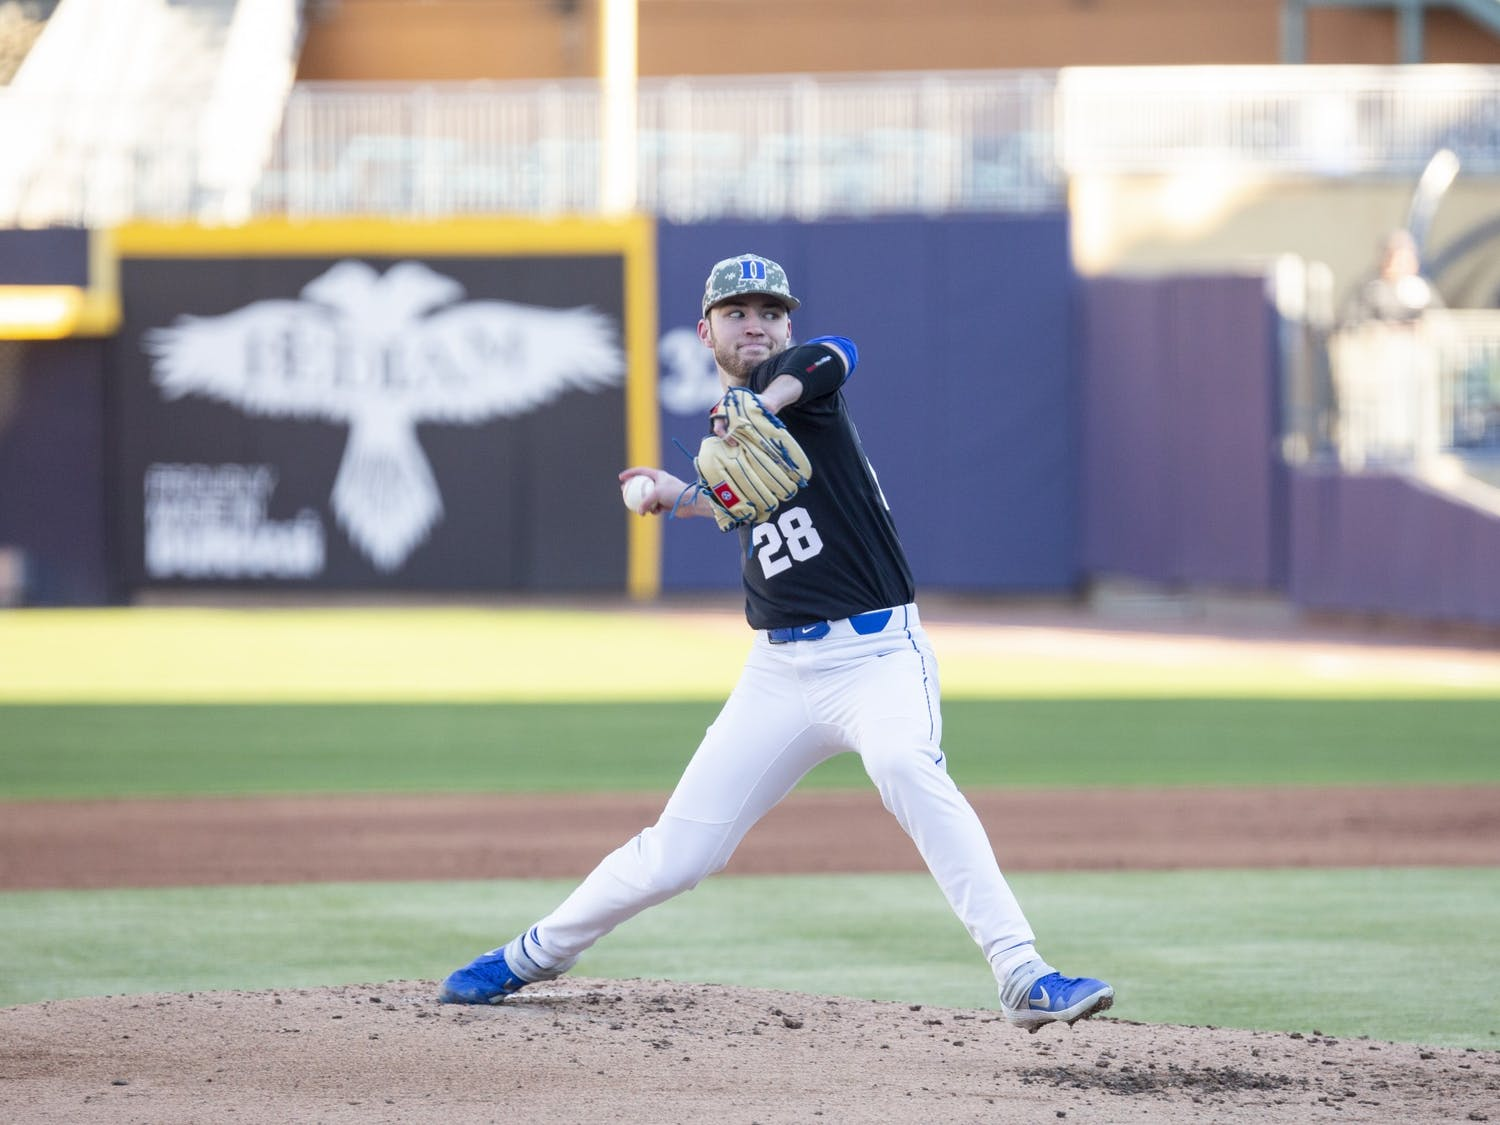 Bryce Jarvis' seven innings of one-hit ball powered Duke to victory Friday.